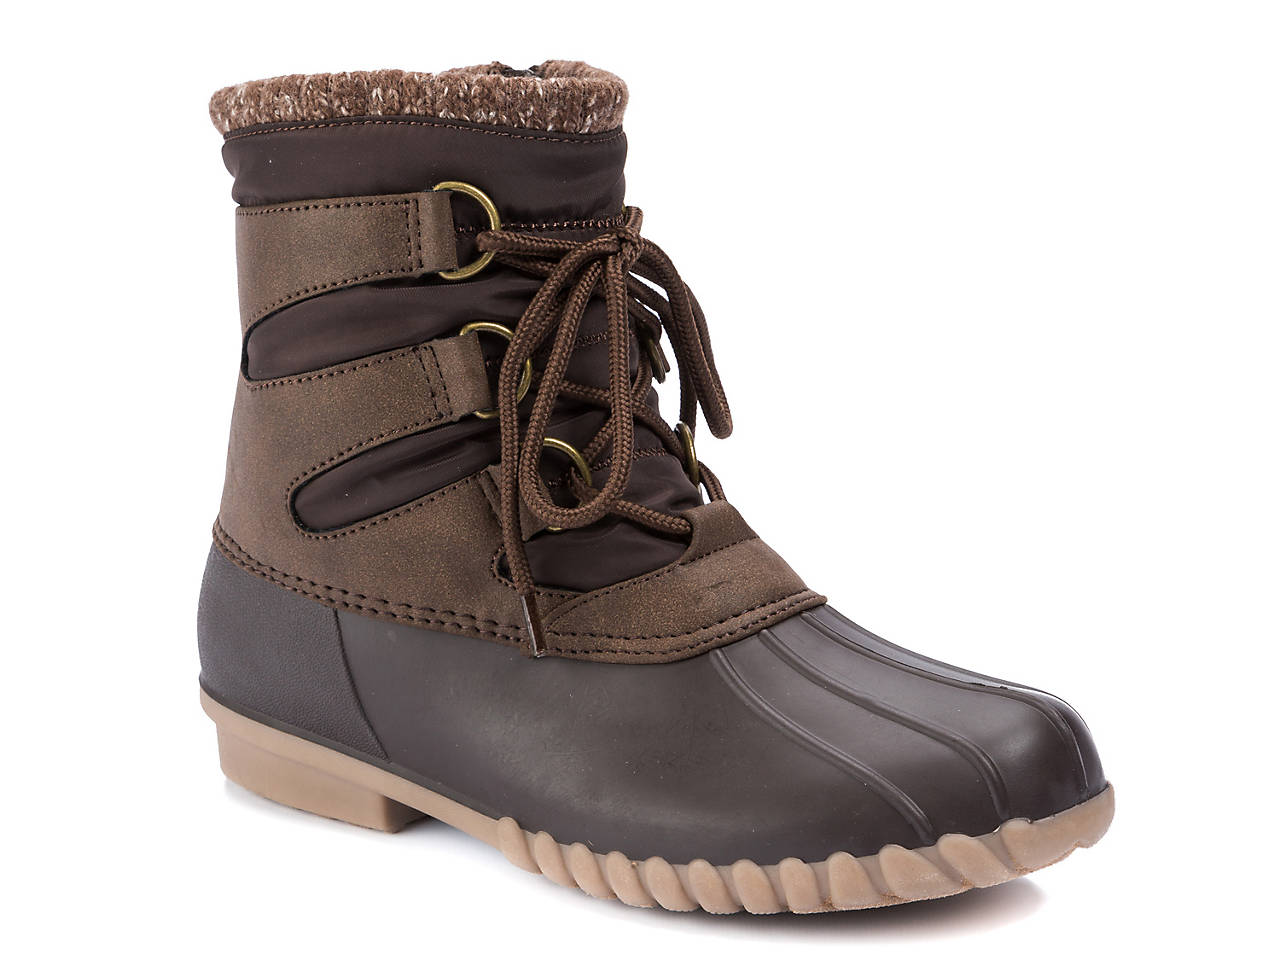 85d768f19f57 Bare Traps Fianna Duck Boot Women's Shoes | DSW